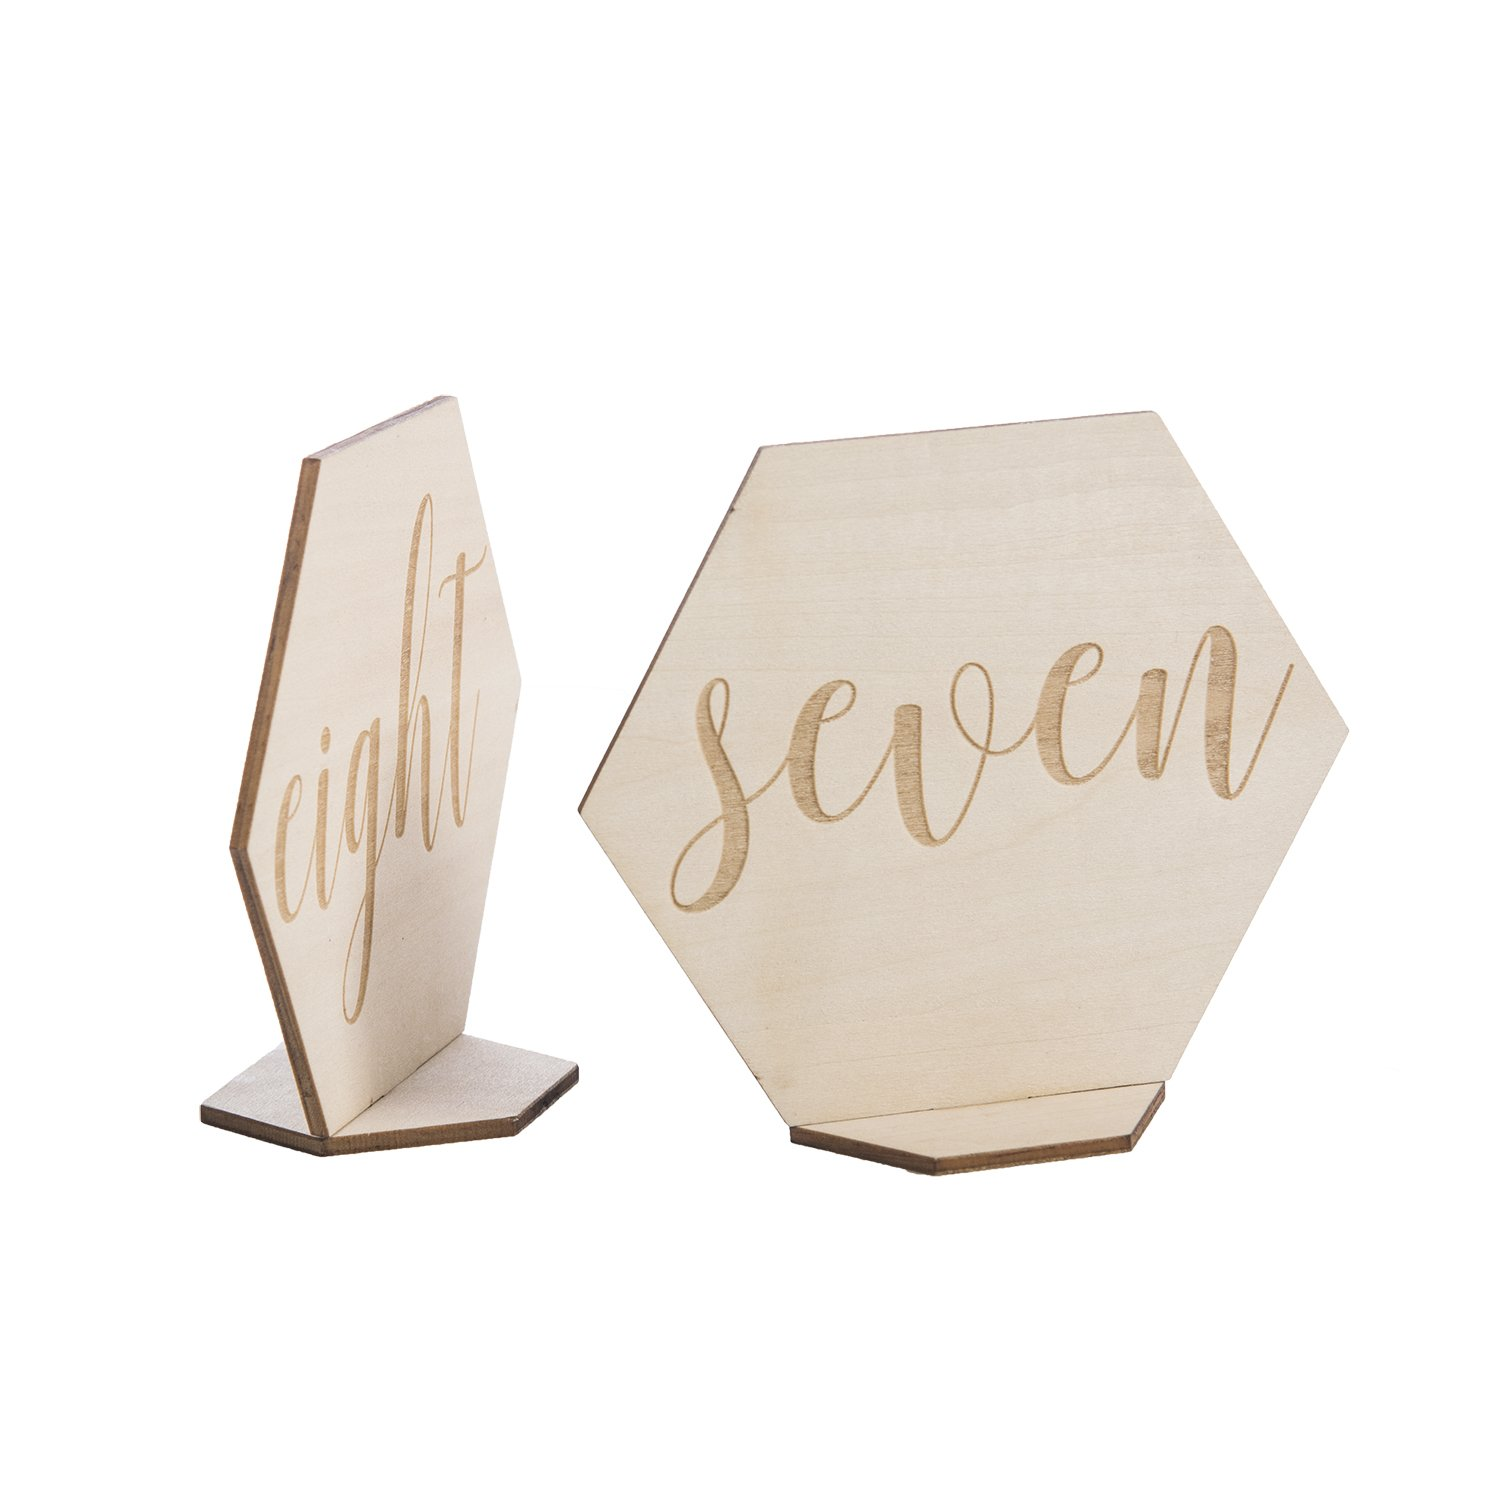 Ling's moment Vintage Elegant Hexagon Diamond Shape 1-15 Wood Table Number Cards Double-Sided Standing Place Card Holders for Wedding Party Bridal Shower Table Decor